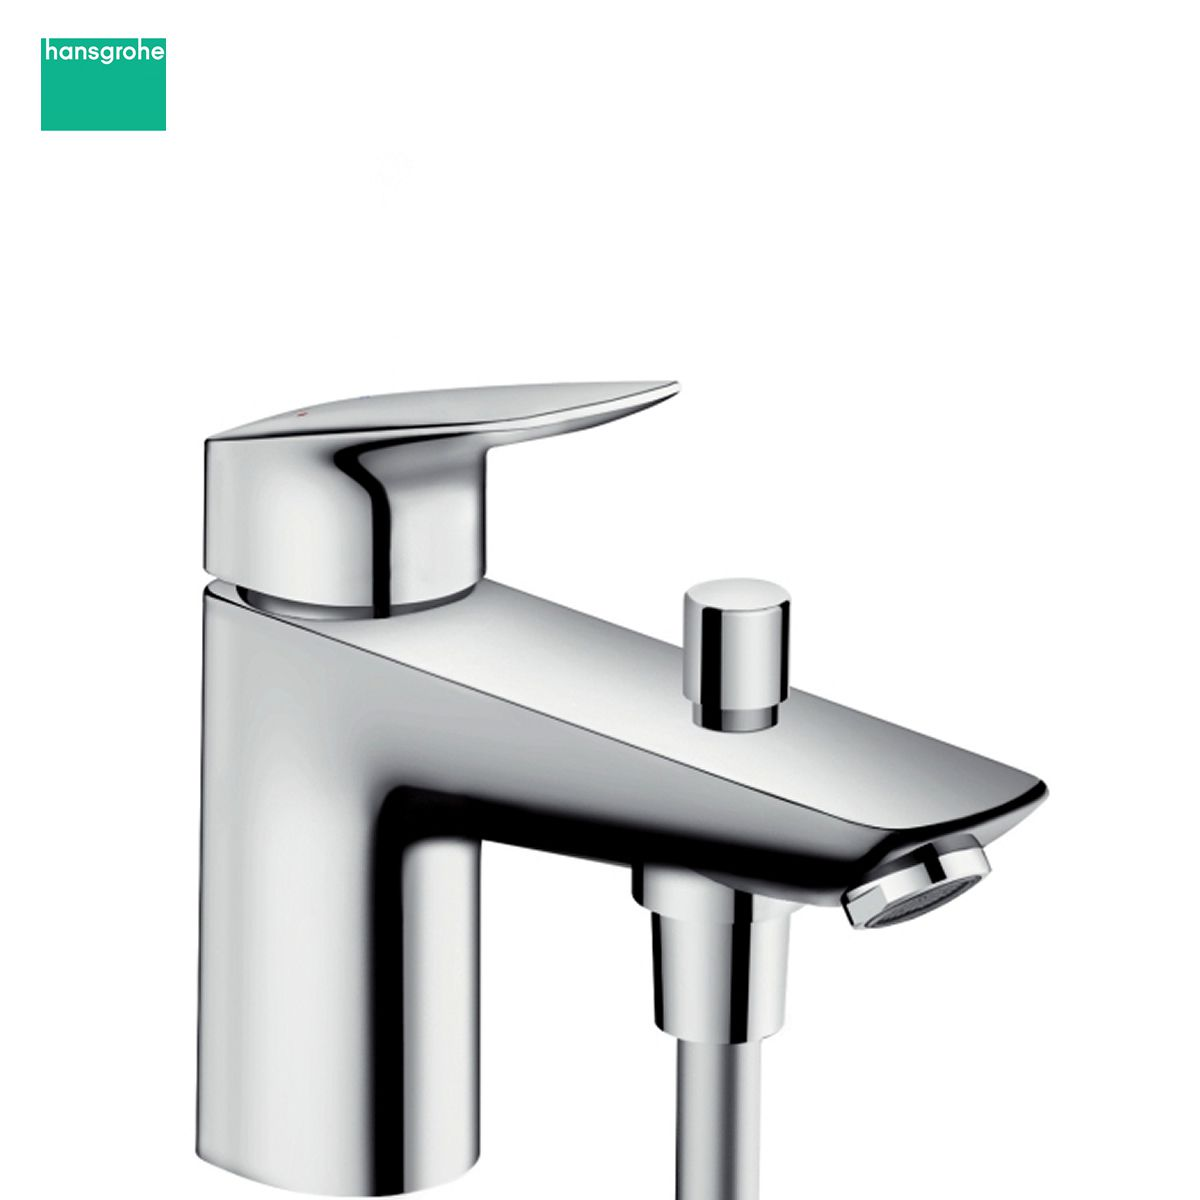 28 single lever bath shower mixer tate collection trana single lever bath shower mixer hansgrohe logis single lever bath shower mixer uk bathrooms